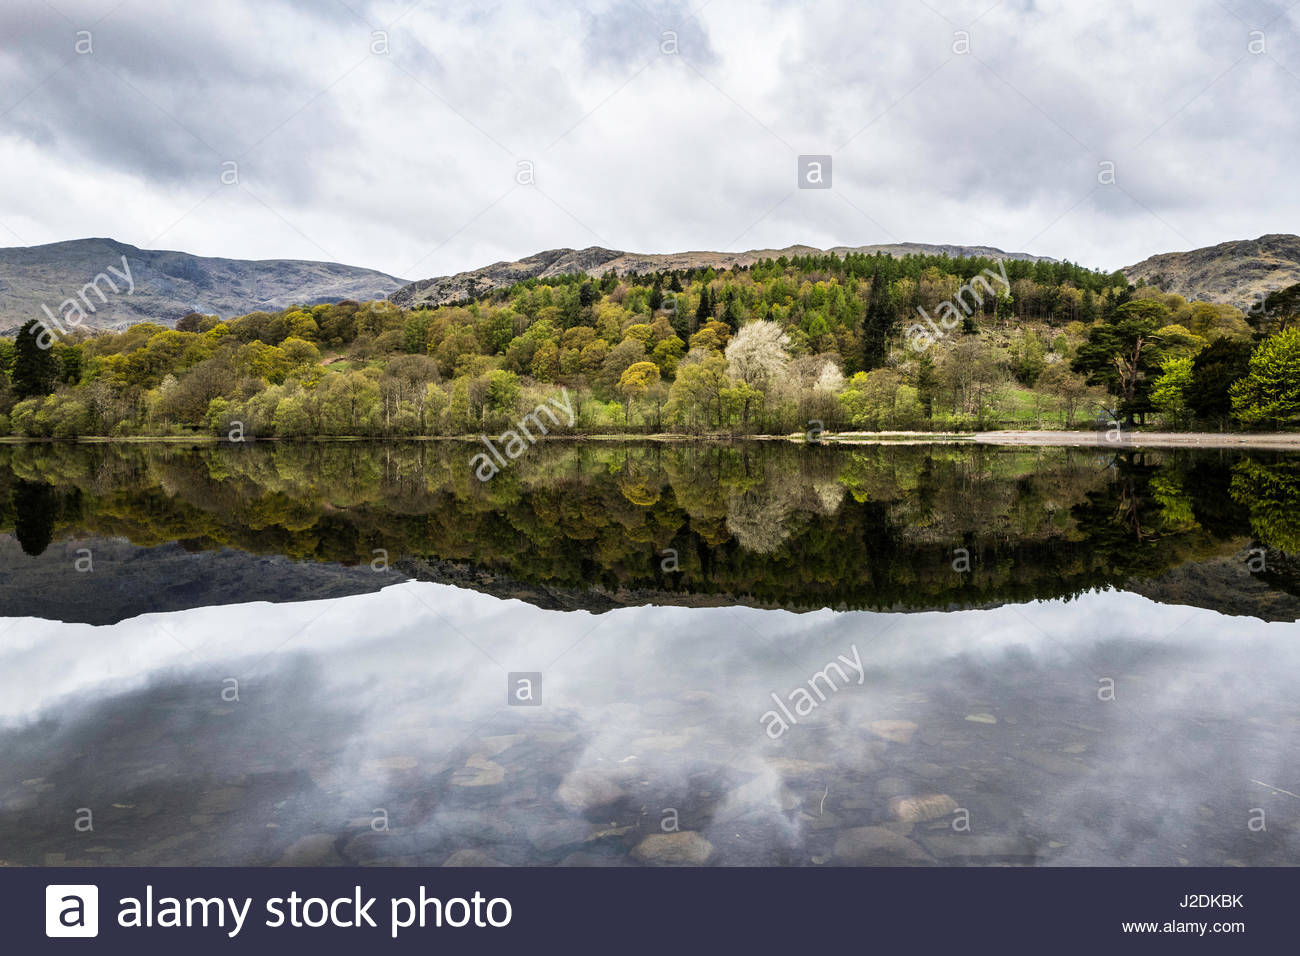 Brantwood House, Coniston, Lake District, England, UK. 28th Apr, 2017. A tranquil and still morning on Coniston - Stock Image